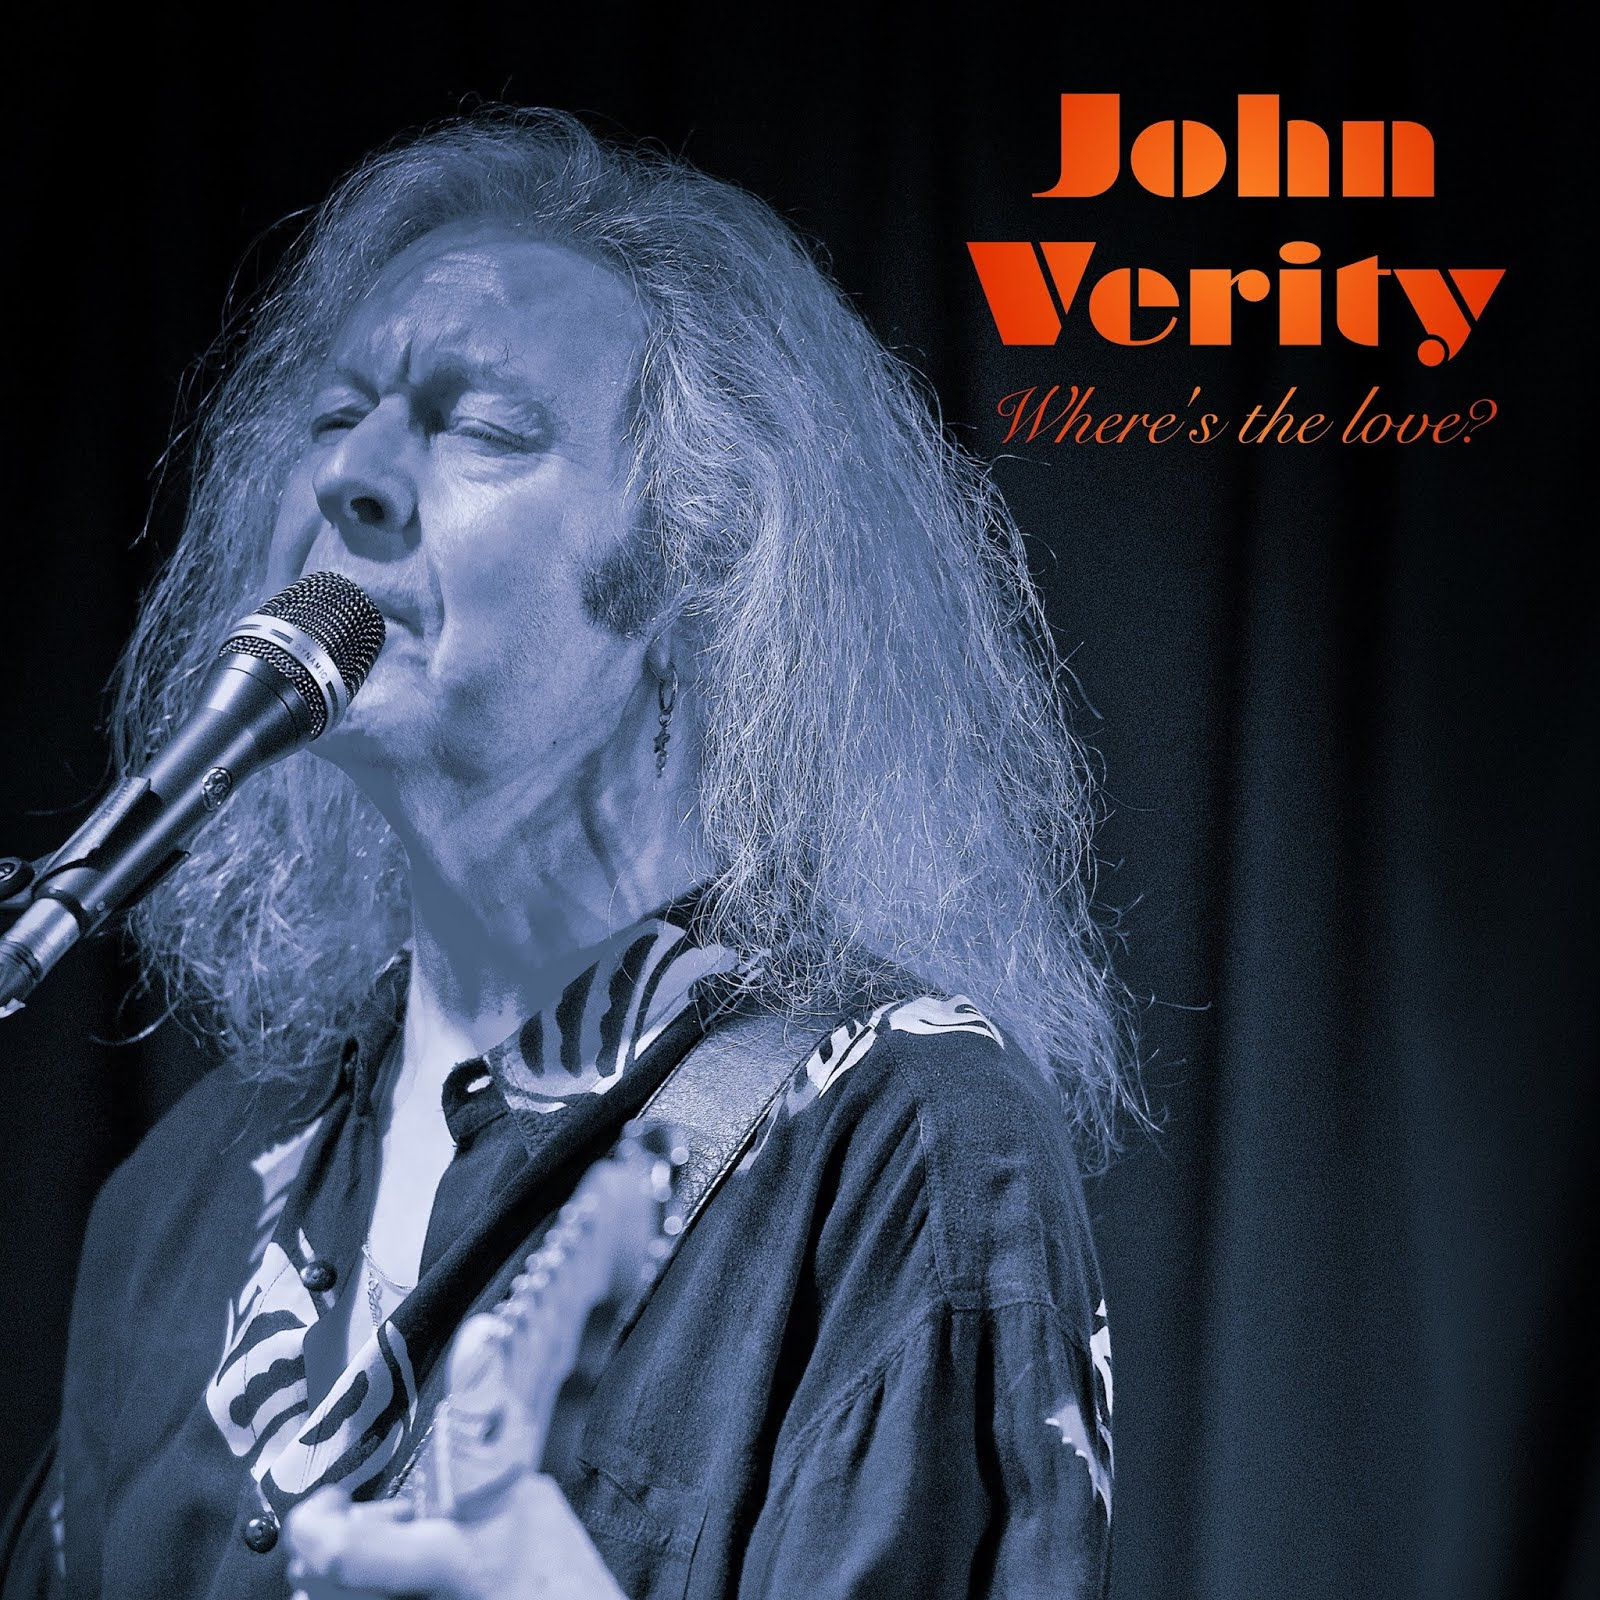 John Verity - Where's The Love? Label: Vavoom Release Date: May 1 - 2019